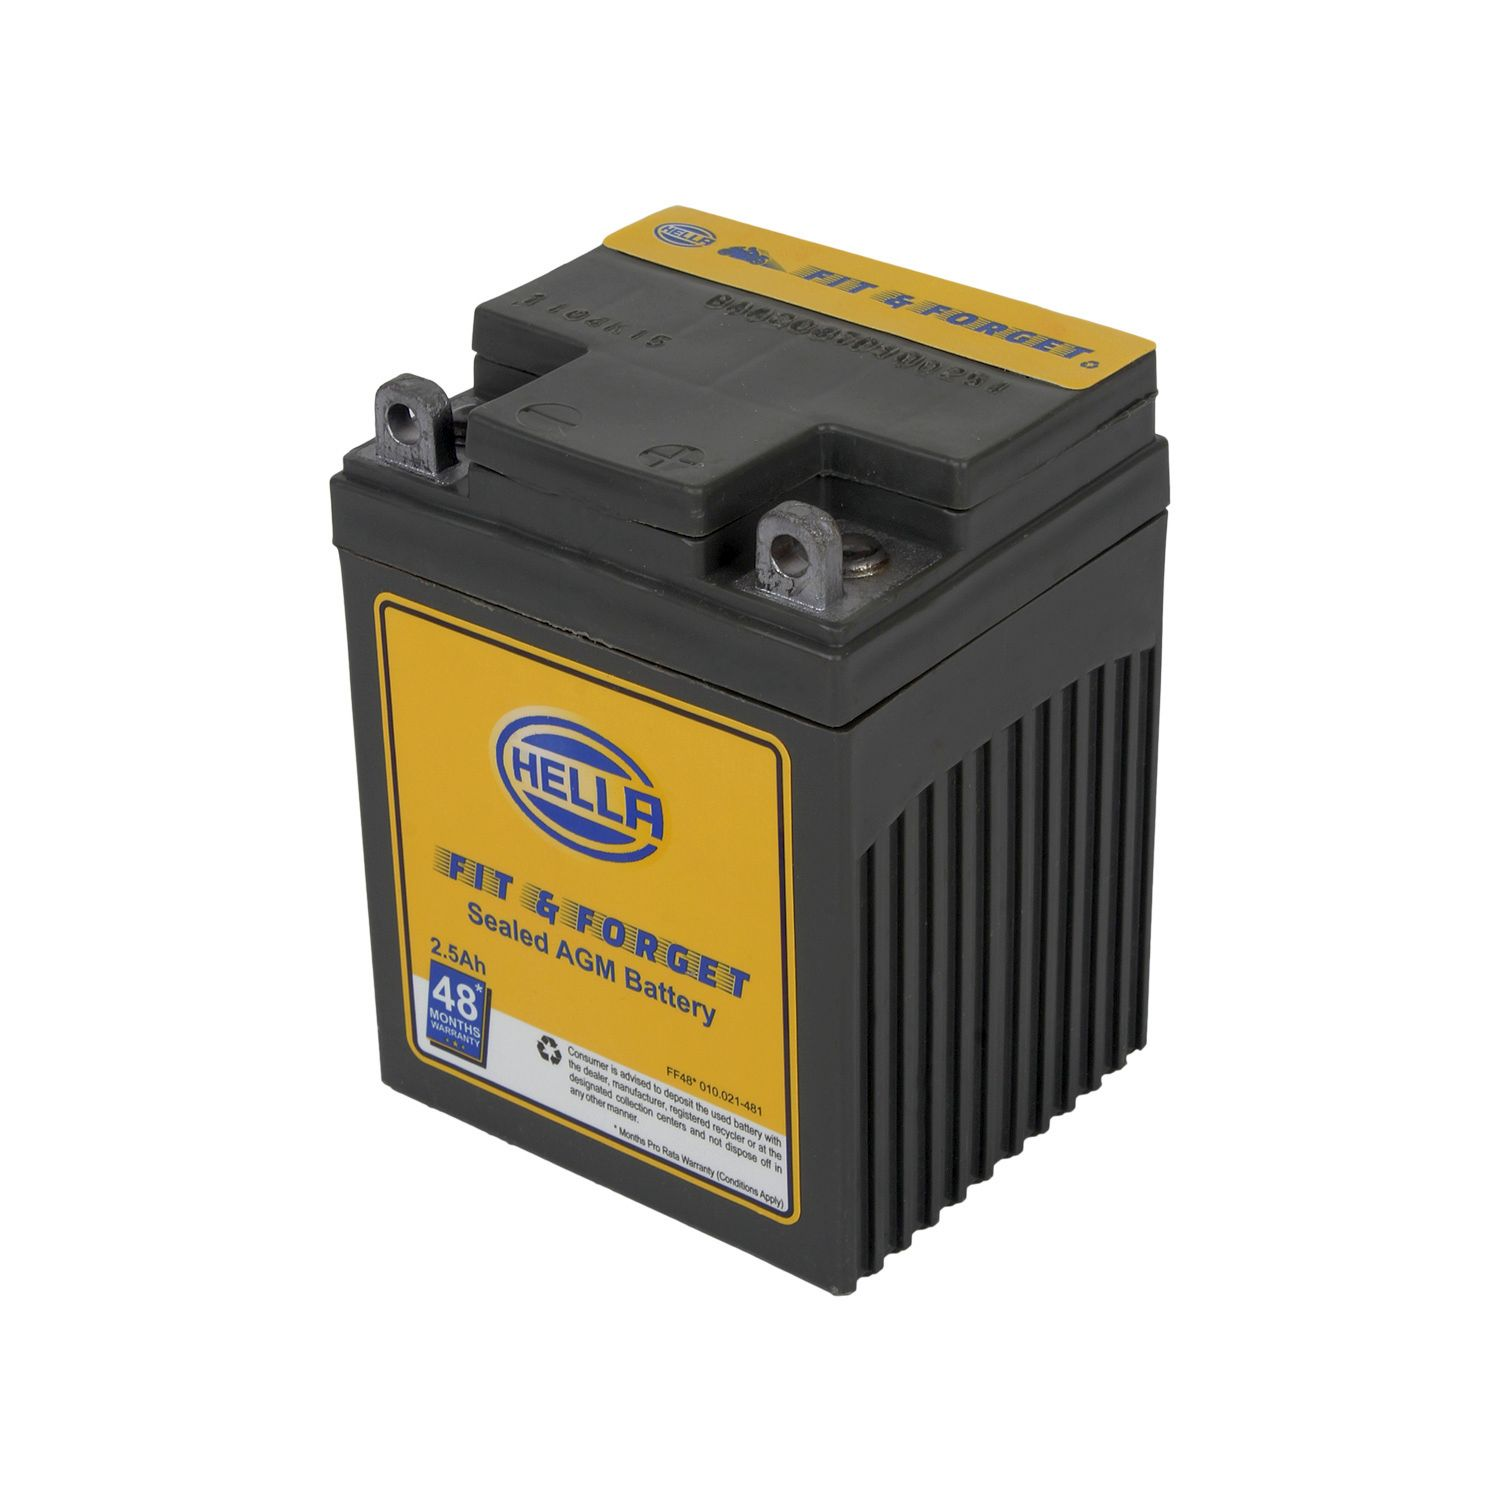 HELLA 010021481 Battery Fit N Forget 48* 2.5 AH